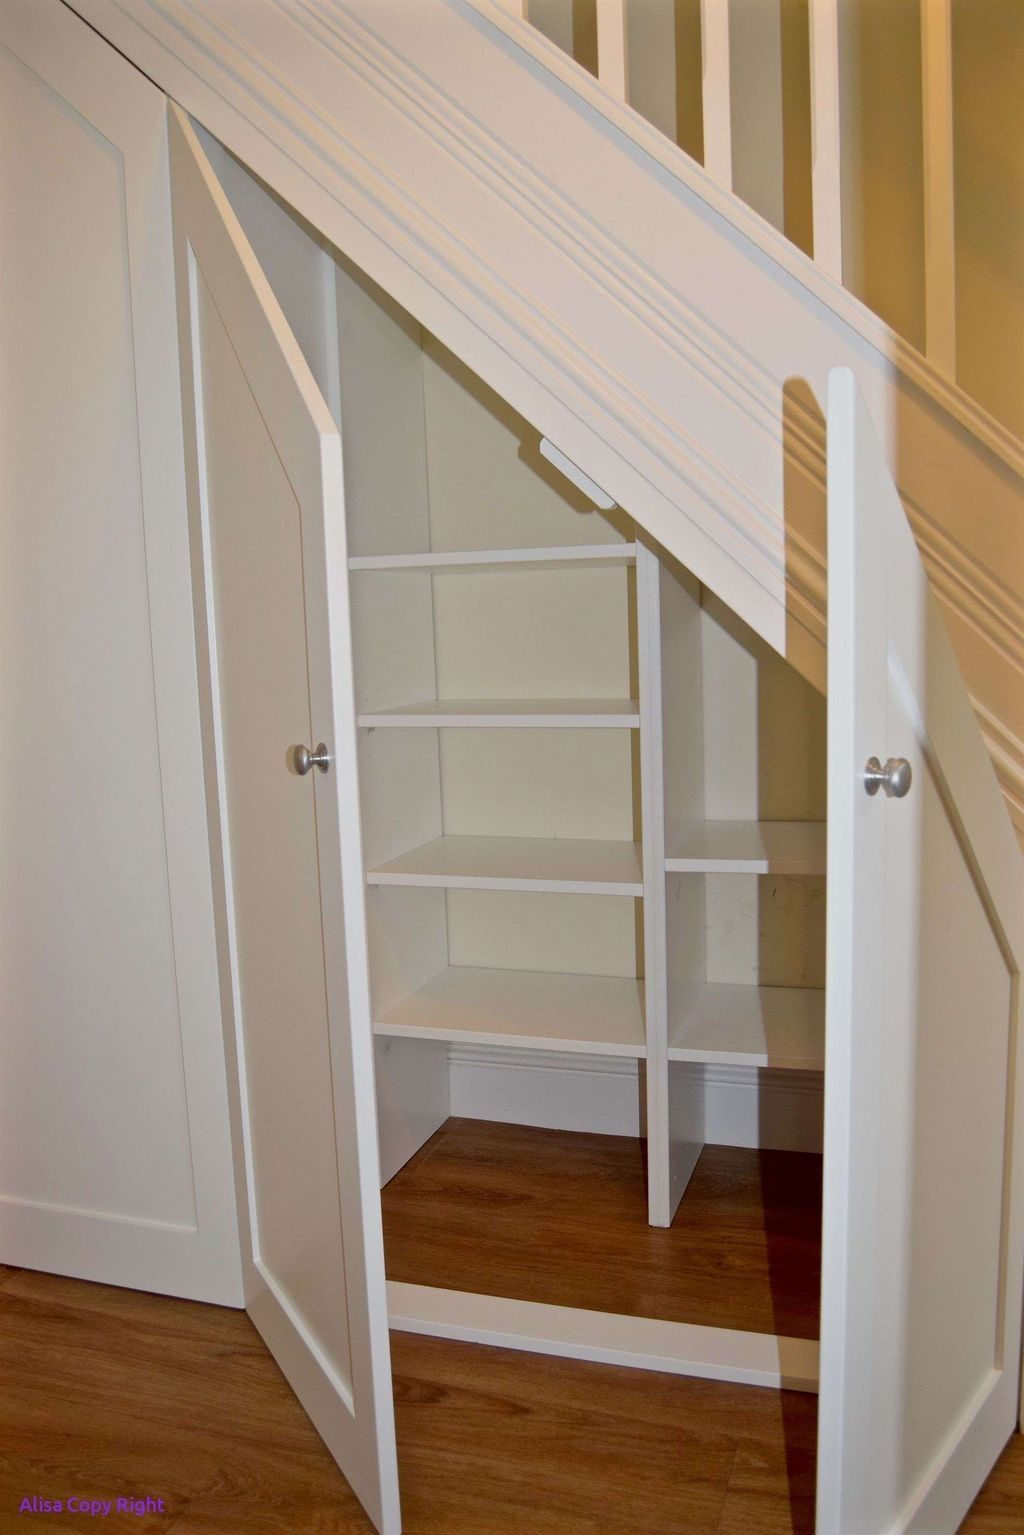 30 Brilliant Storage Ideas For Under Stairs To Try Asap In 2020